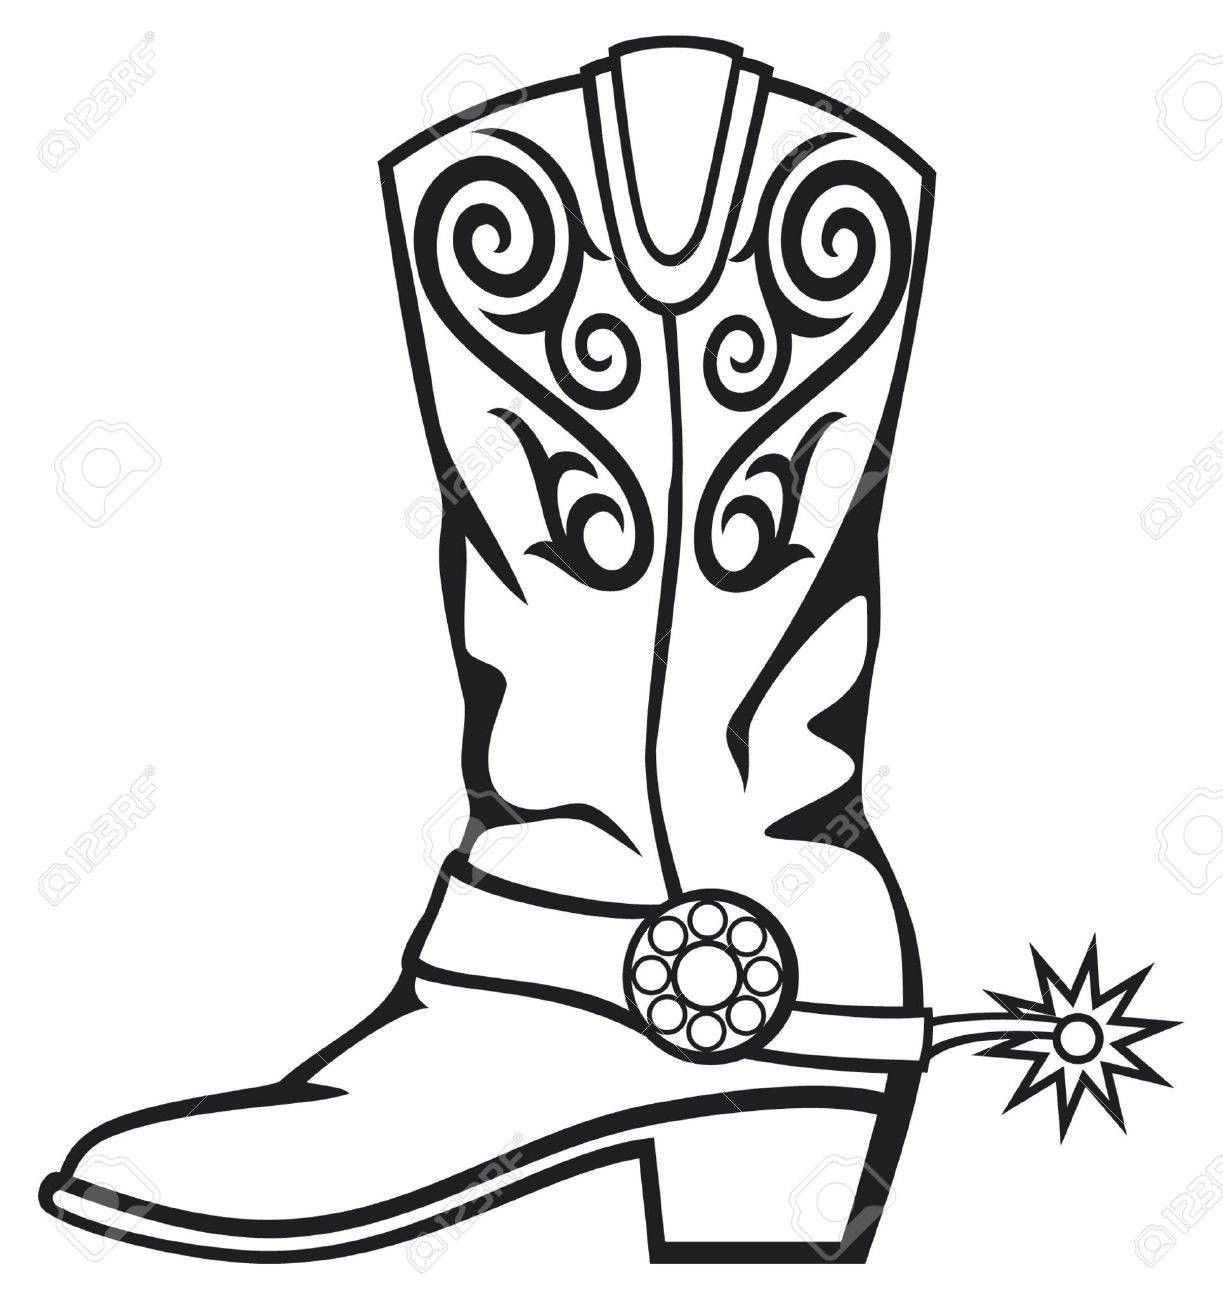 hight resolution of boots clipart western boot 448